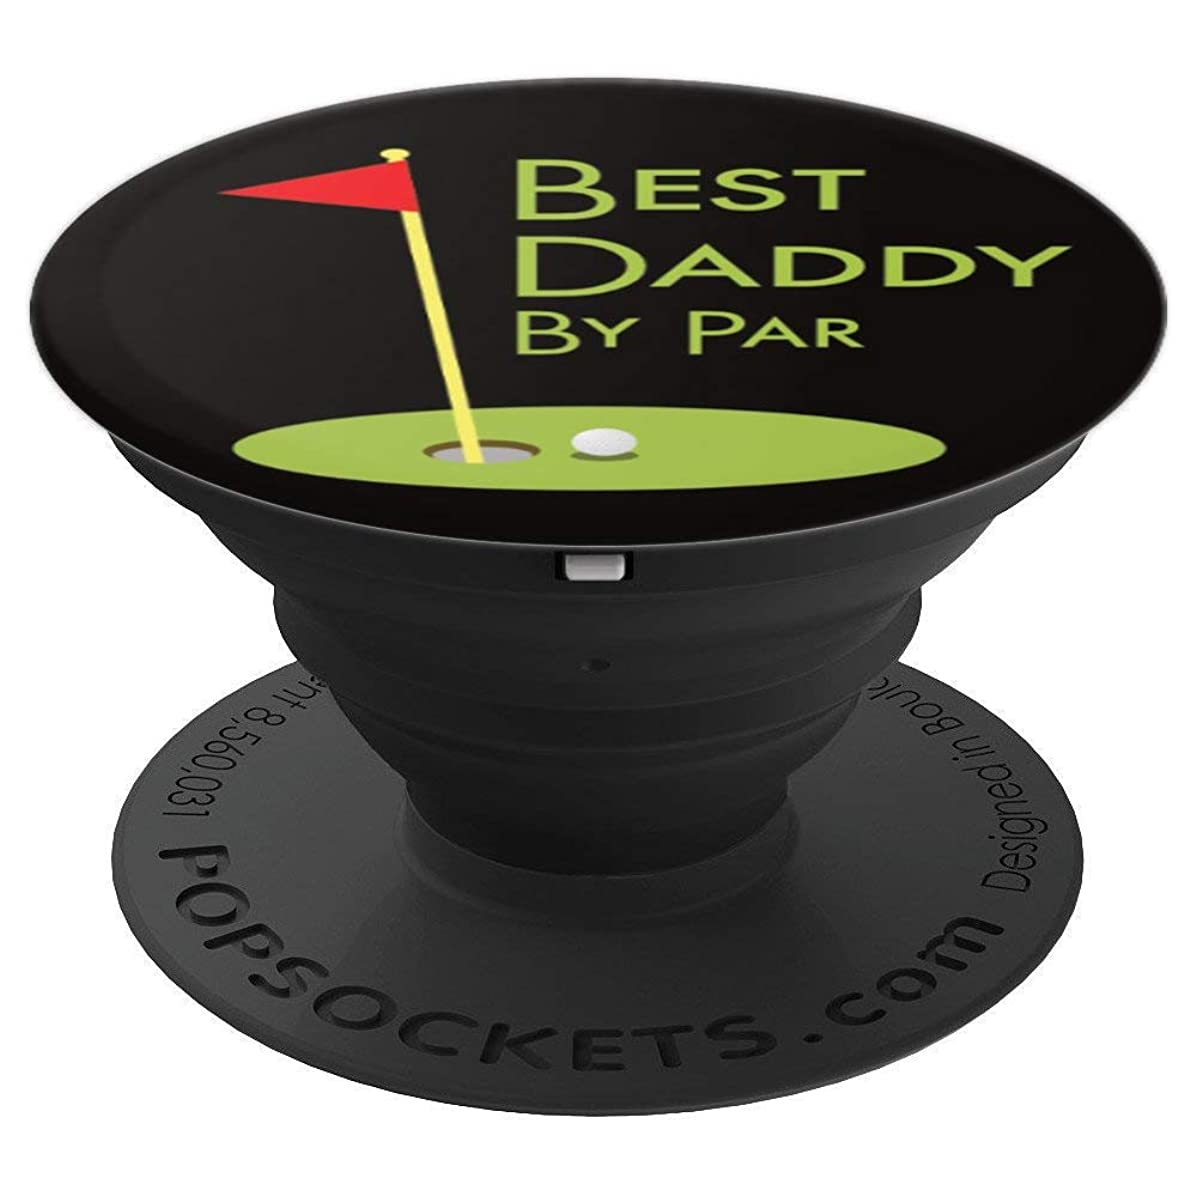 Fathers Day Golf Themed Gift For Men - Best Daddy By Par - PopSockets Grip and Stand for Phones and Tablets